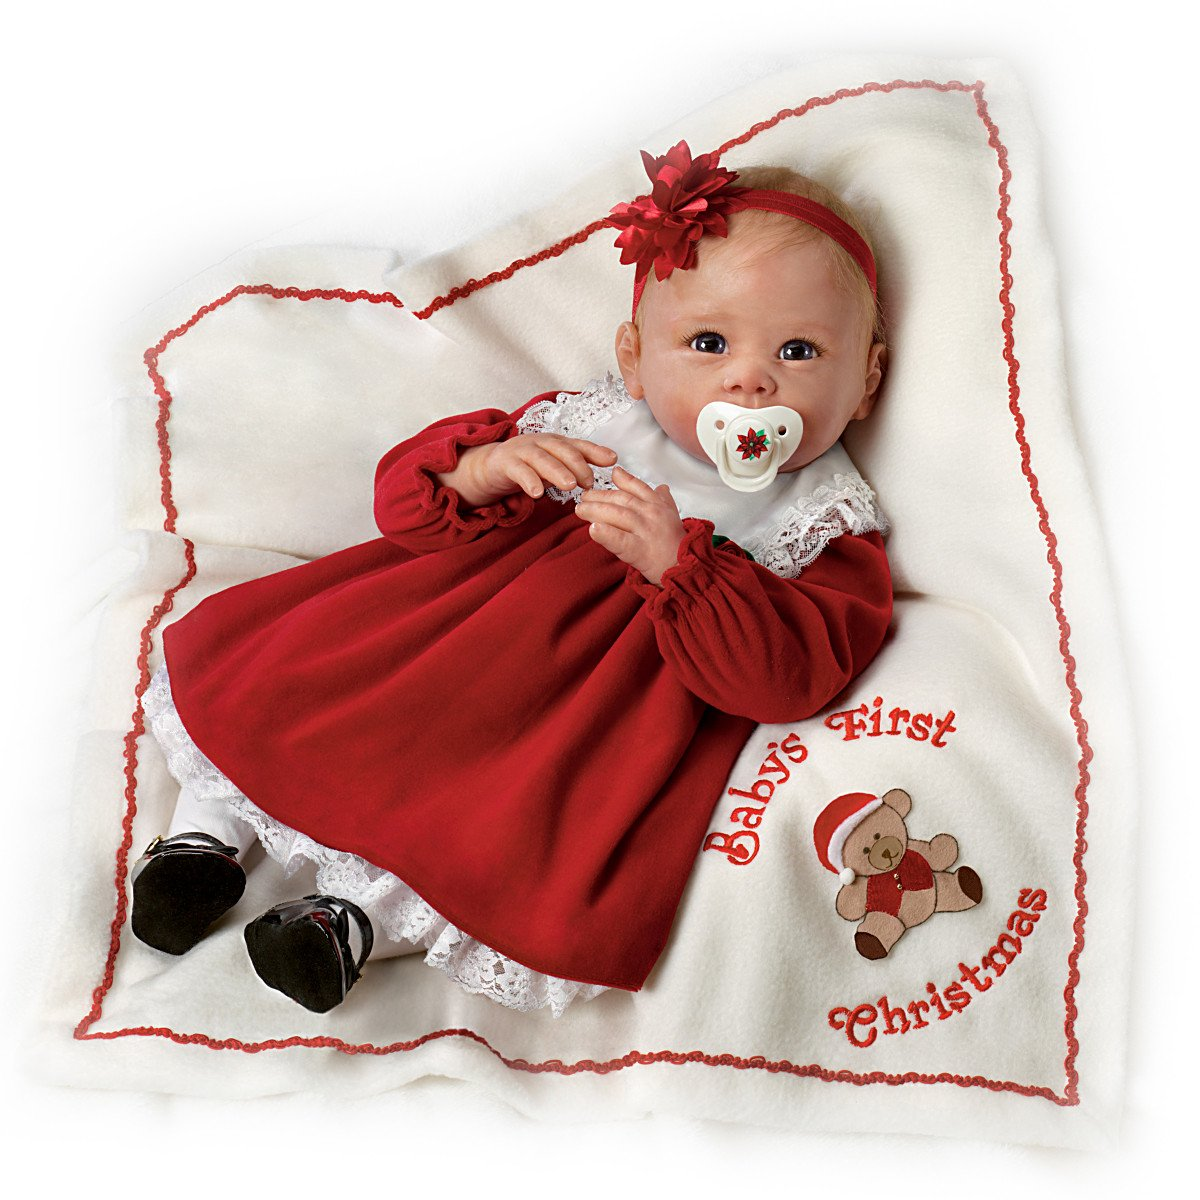 amazoncom 21 ashton drake babys first christmas with basket and teddy bear signature edition doll new 2014 0302034001 think christmas by the - Babys First Christmas Photos